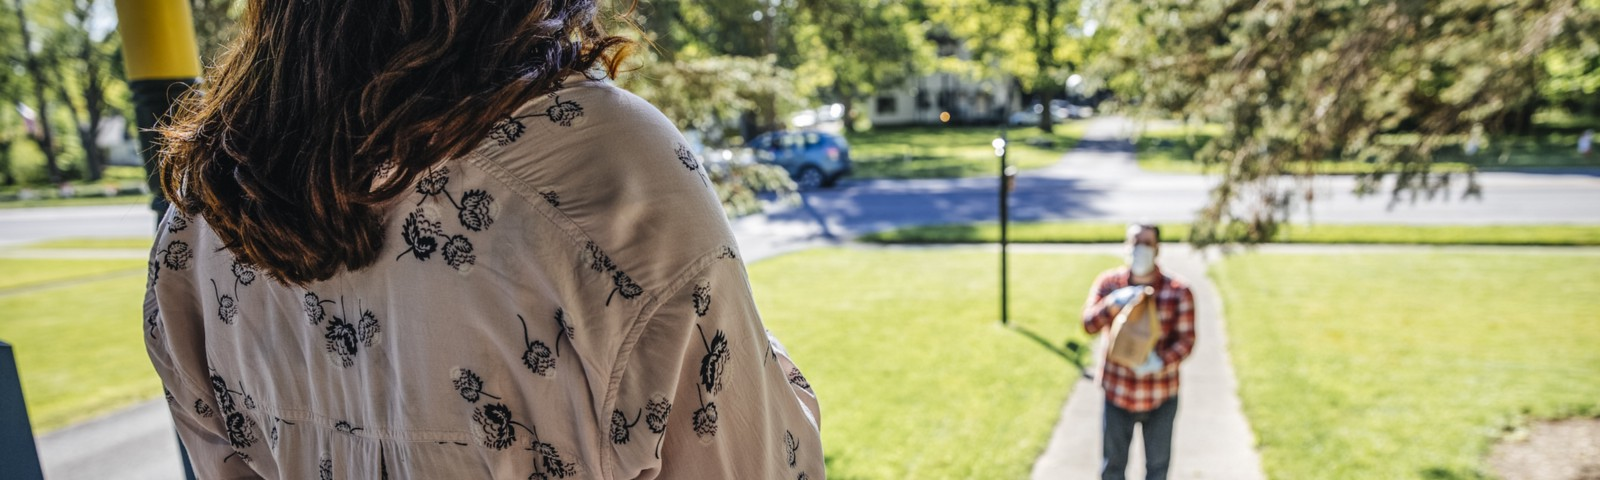 A person on their front porch, looking out at their neighborhood; on their front walk stands a person delivering a bag.